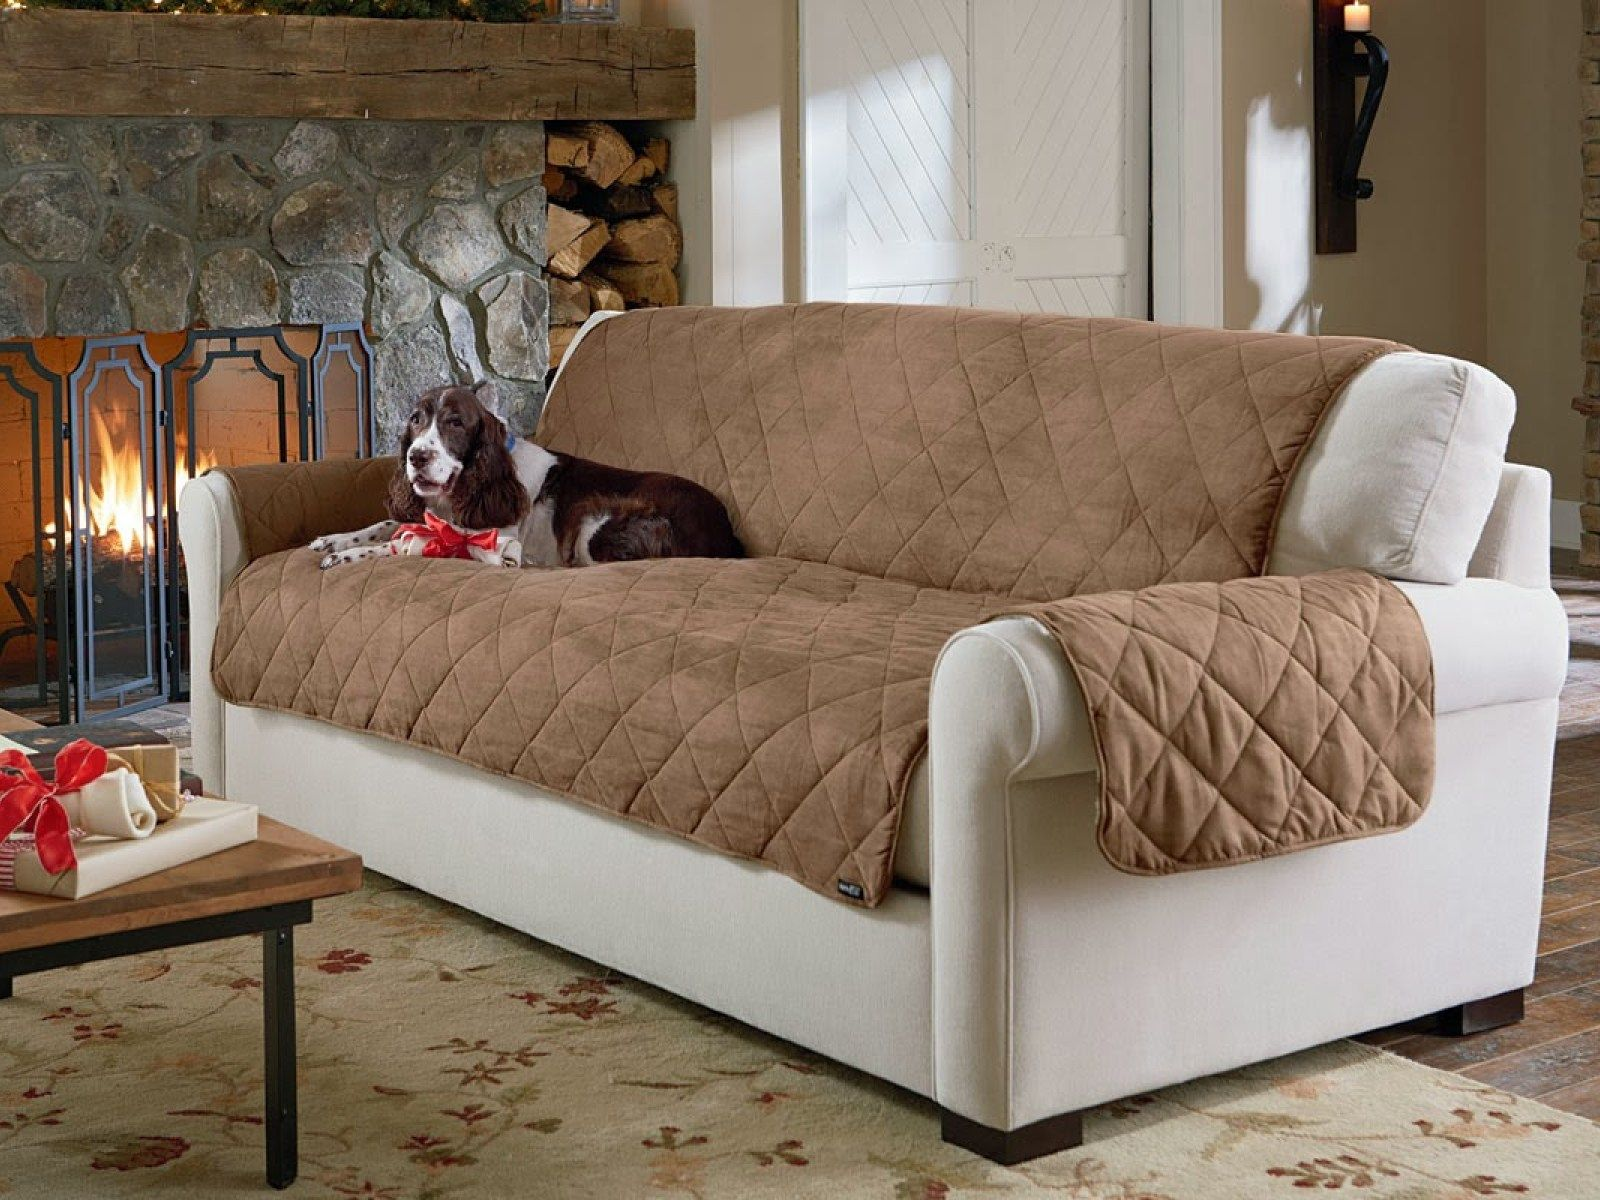 Best Sectional Couch For Dogs